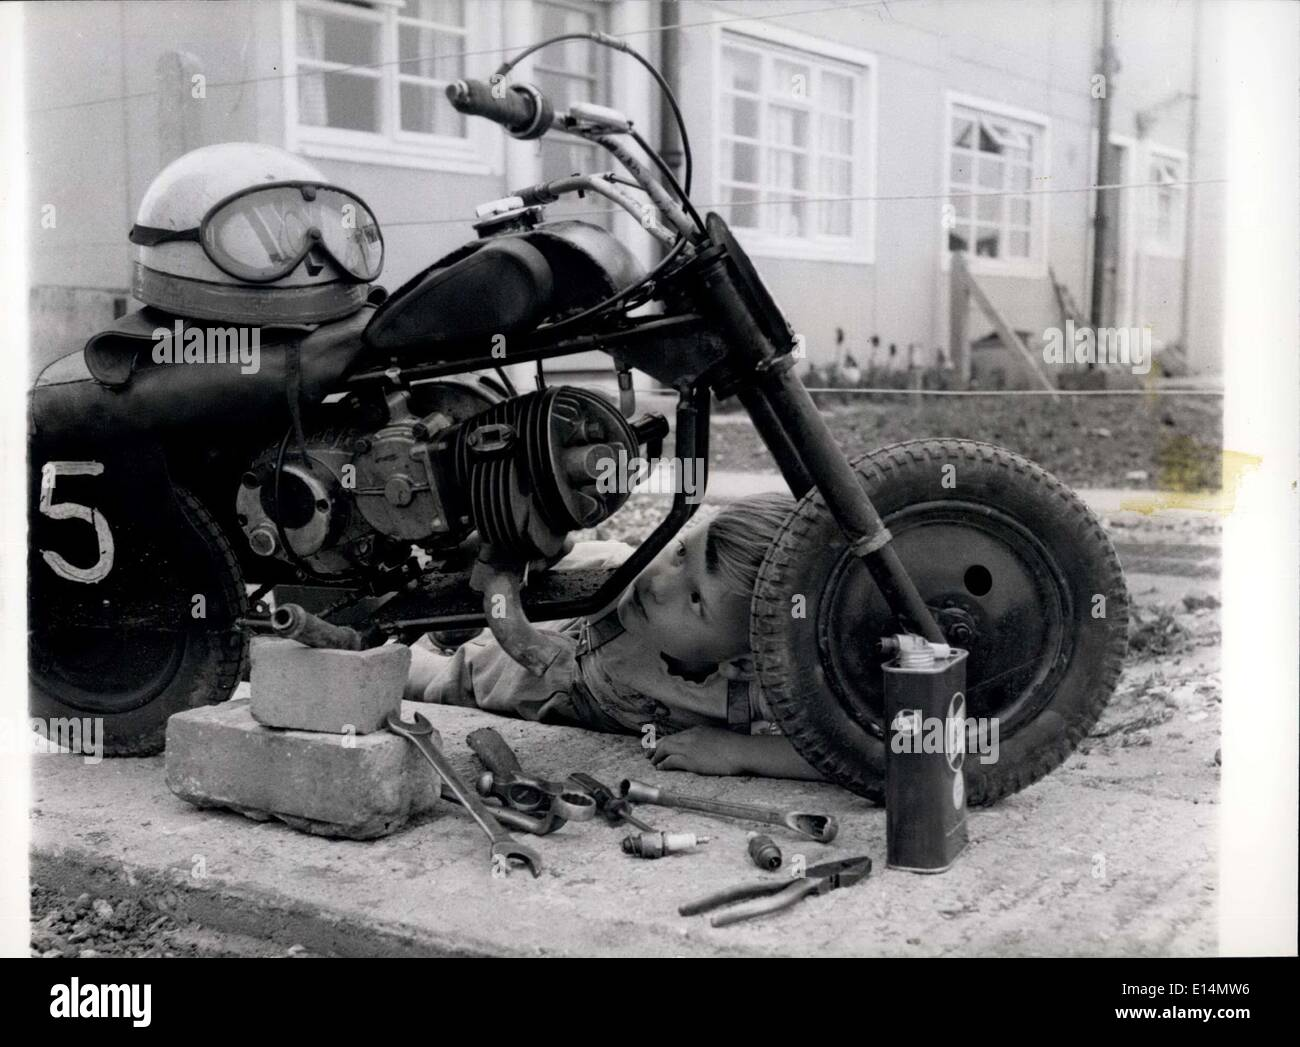 Apr. 05, 2012 - Motorbike Mechanic - At Six: C Clive Loynes gets down to a sot of work on his bike. He knows how it works, and - Stock Image